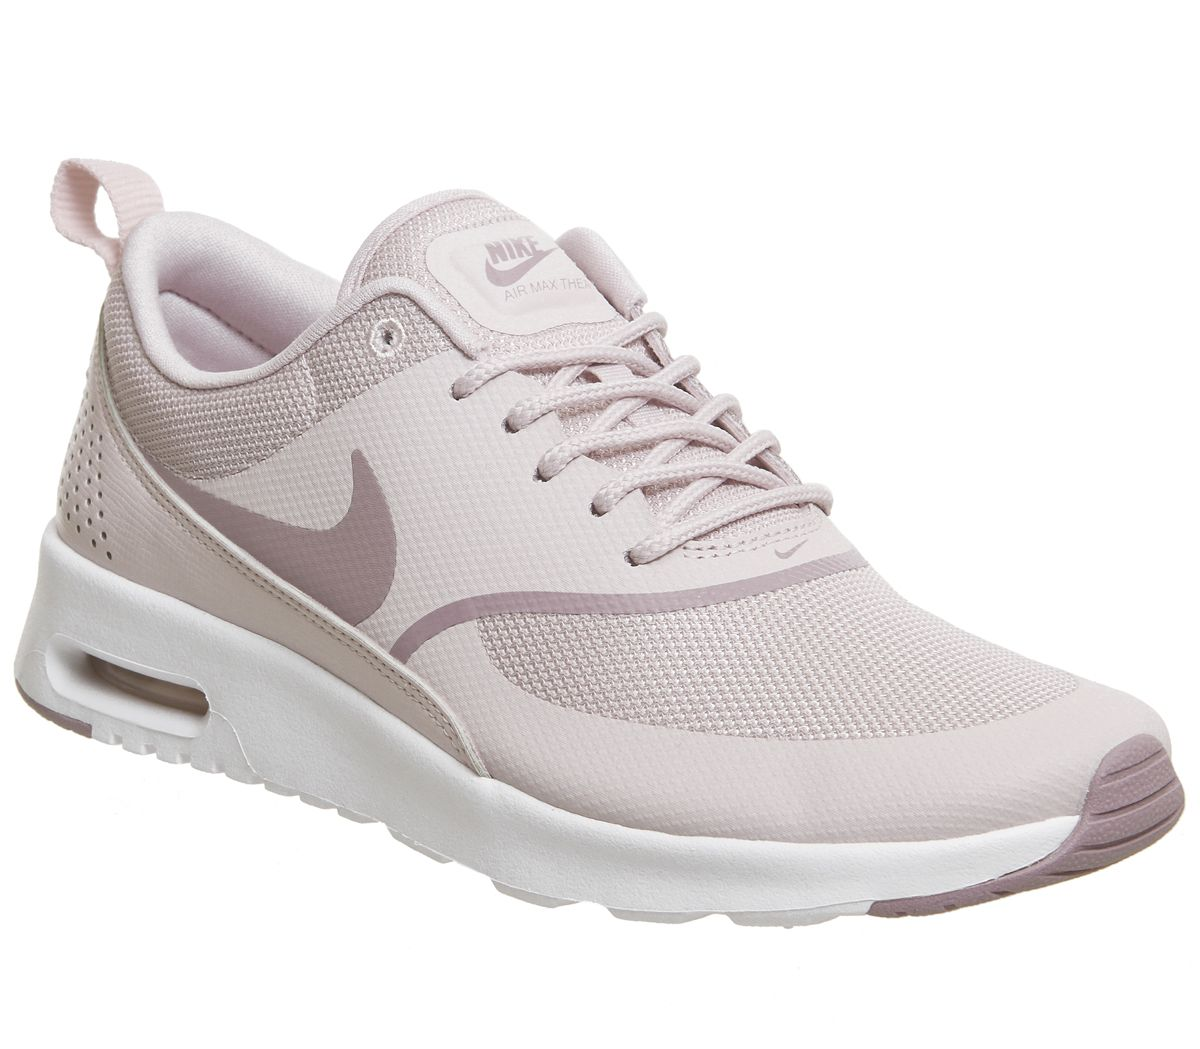 435a300c4d32f Nike Air Max Thea Trainers Barely Rose Elemental Rose White - Hers ...